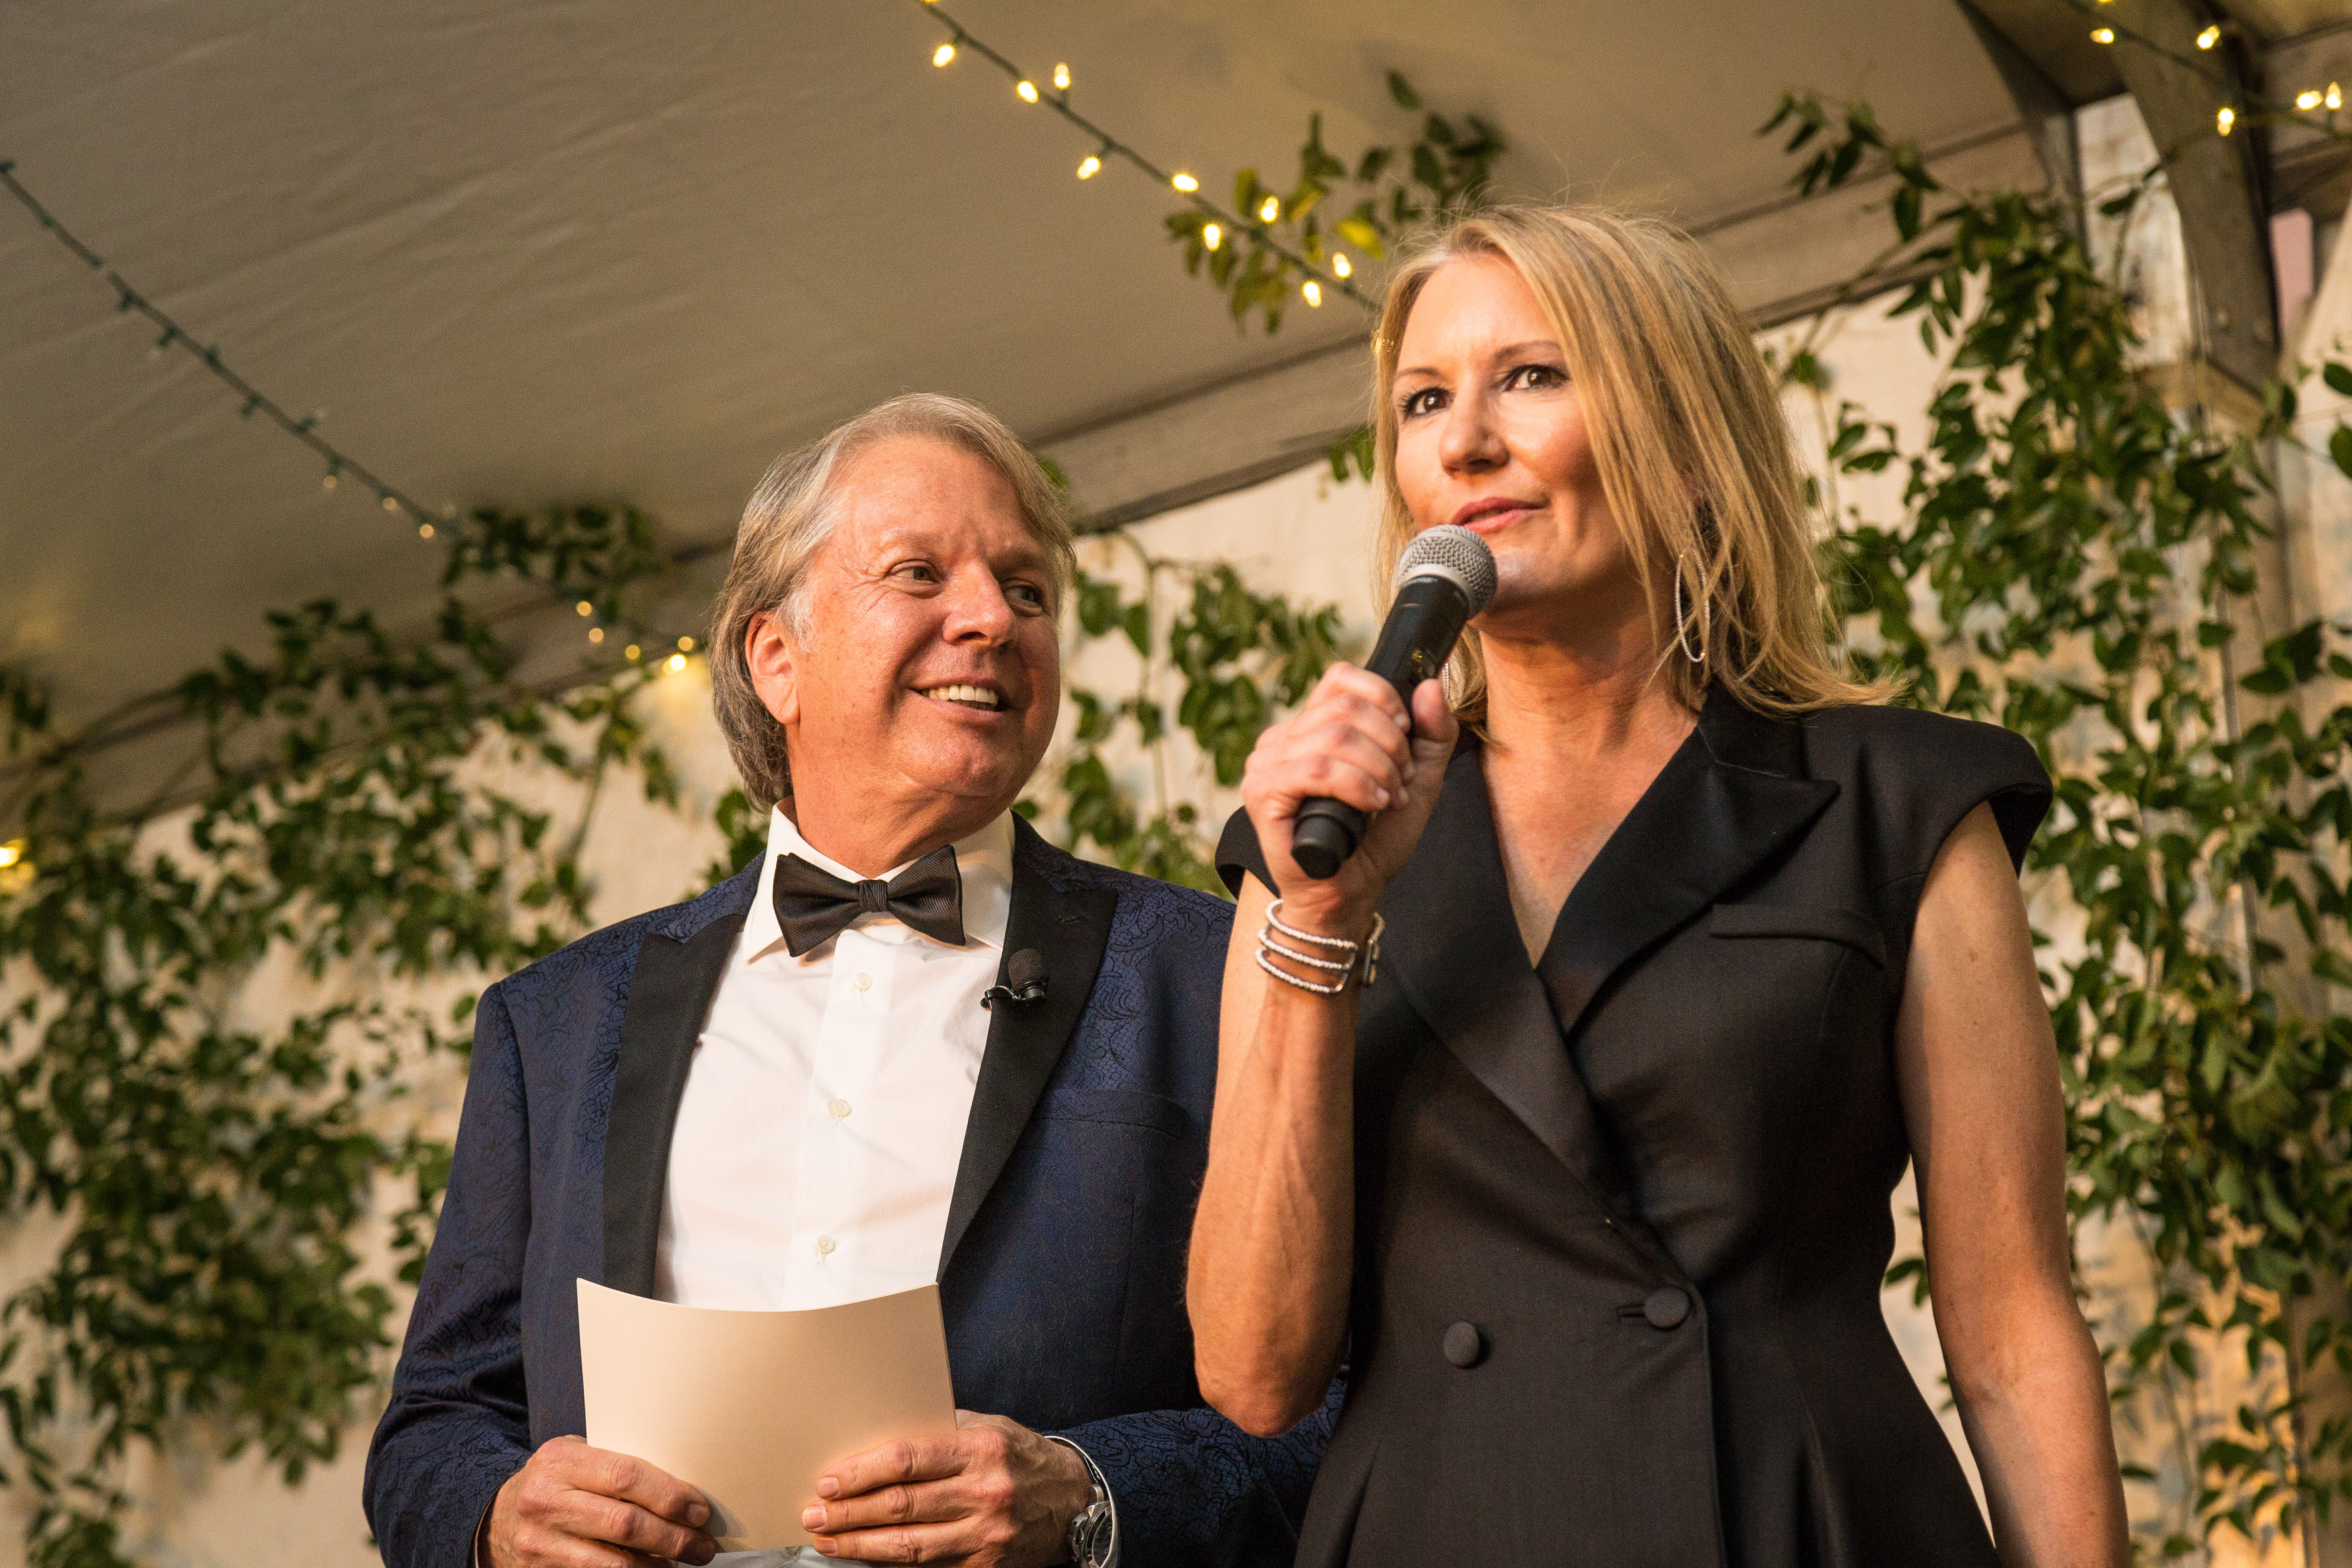 Dean Fearing and Wanda Gierhart hosting TACA's 50th Anniversary Gala